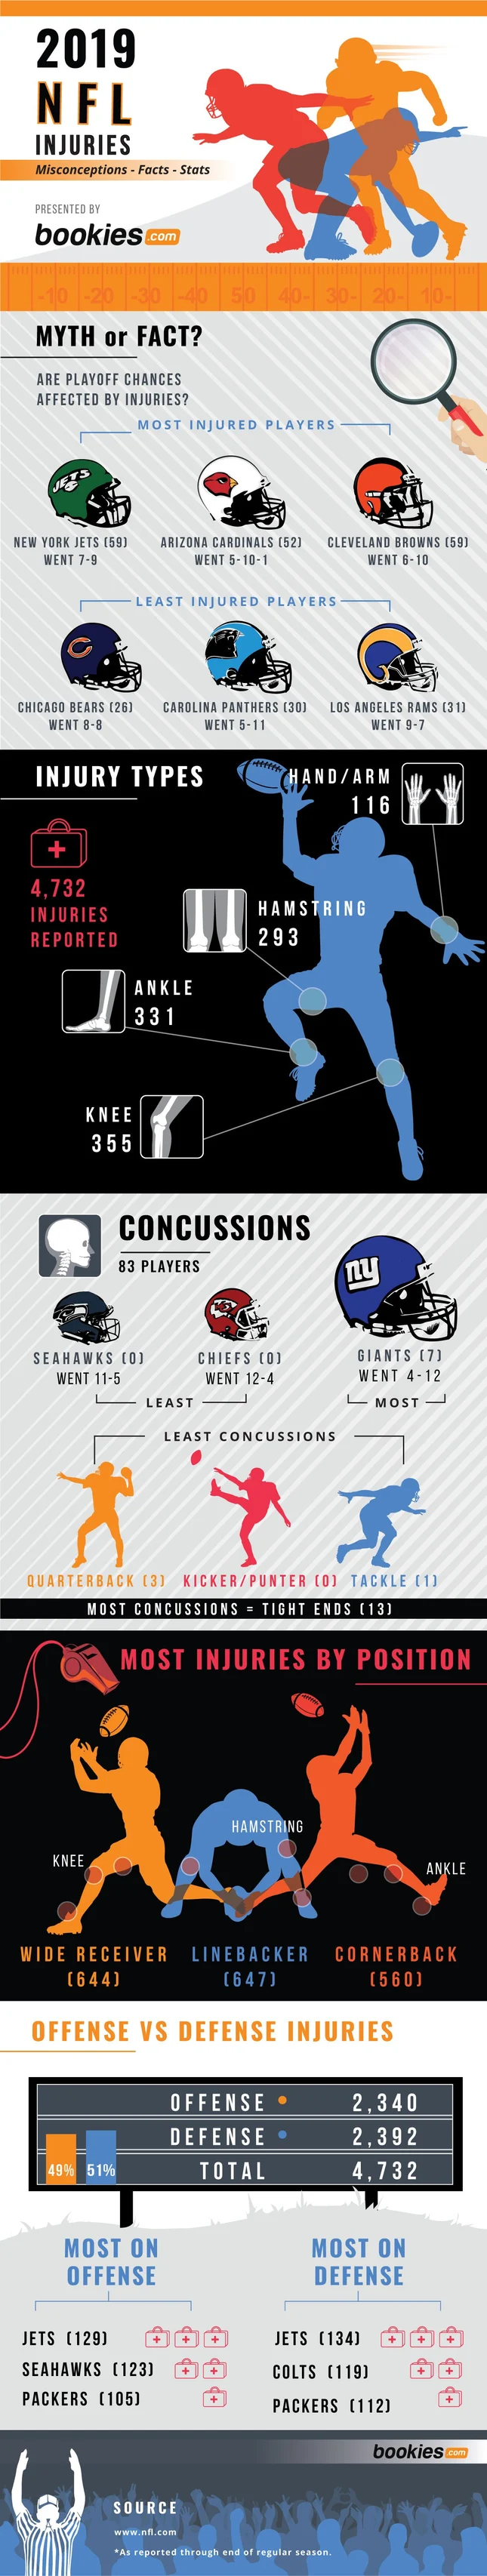 True Gambling Impact of Injuries Heading Into 2020 NFL Playoffs #infographic